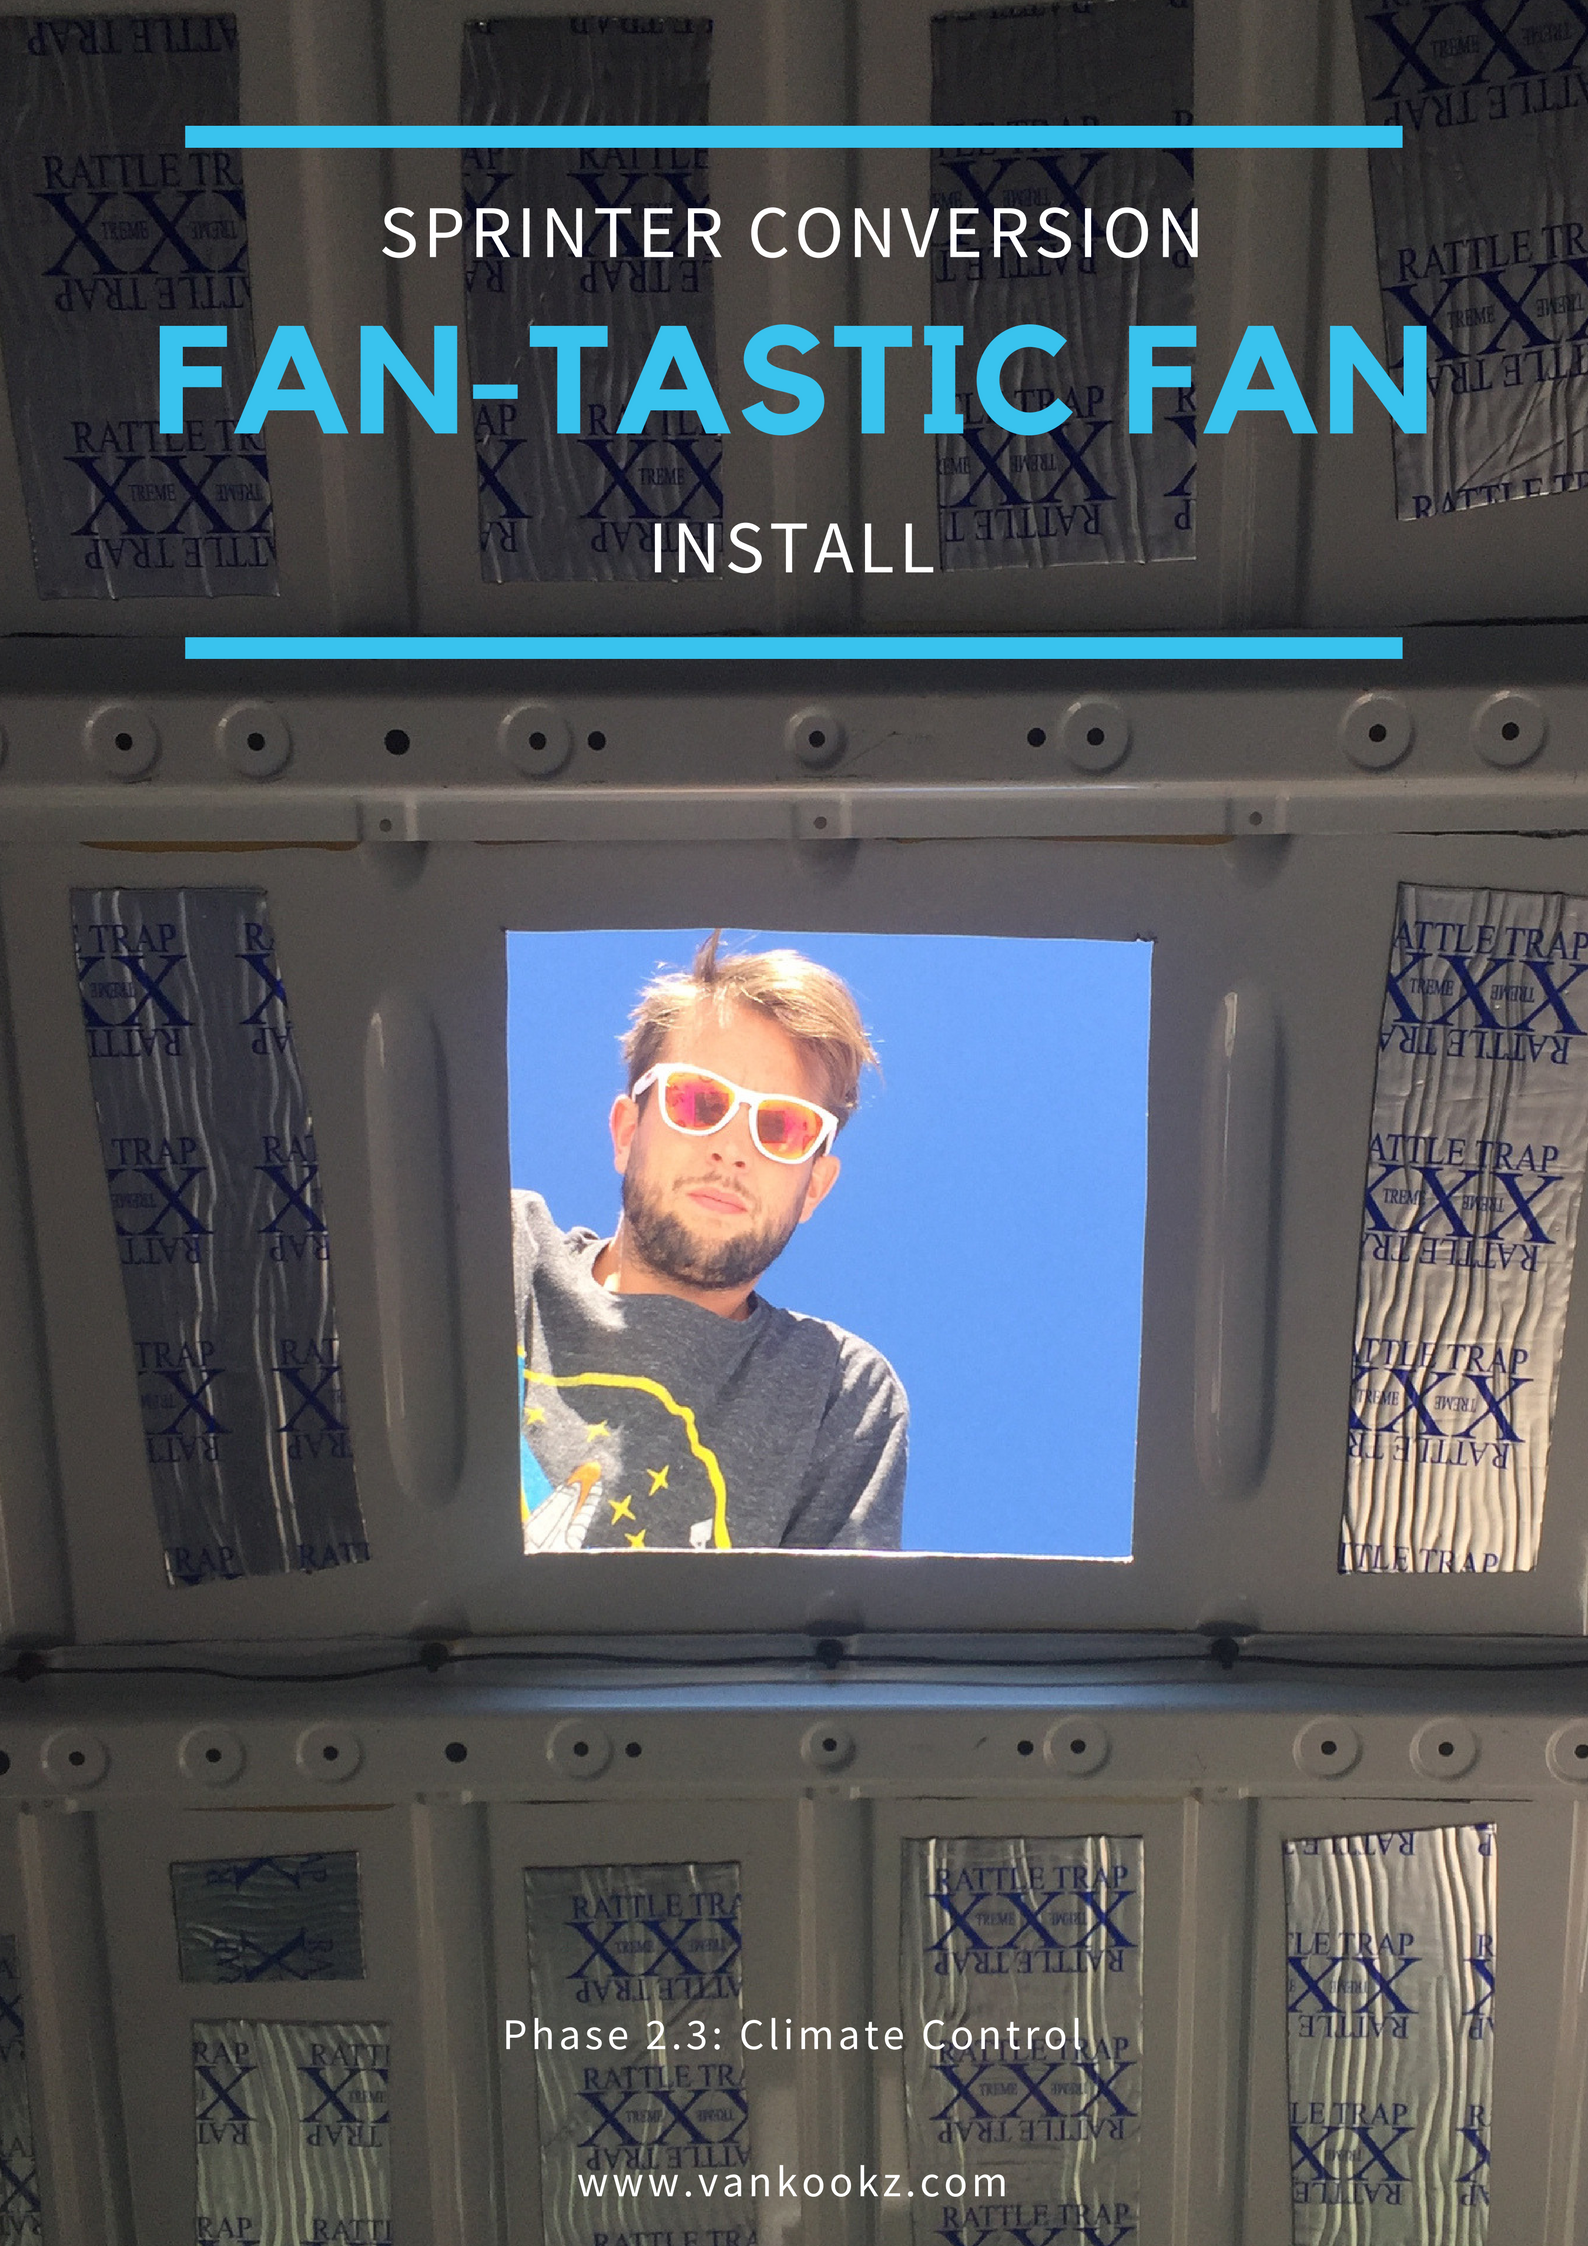 DIY Fantastic Fan Install - Phase 2.3 - The first hole in the van is an intimidating task, but that van won't build itself. So click read more and start that daunting task of cutting that first hole in the van.